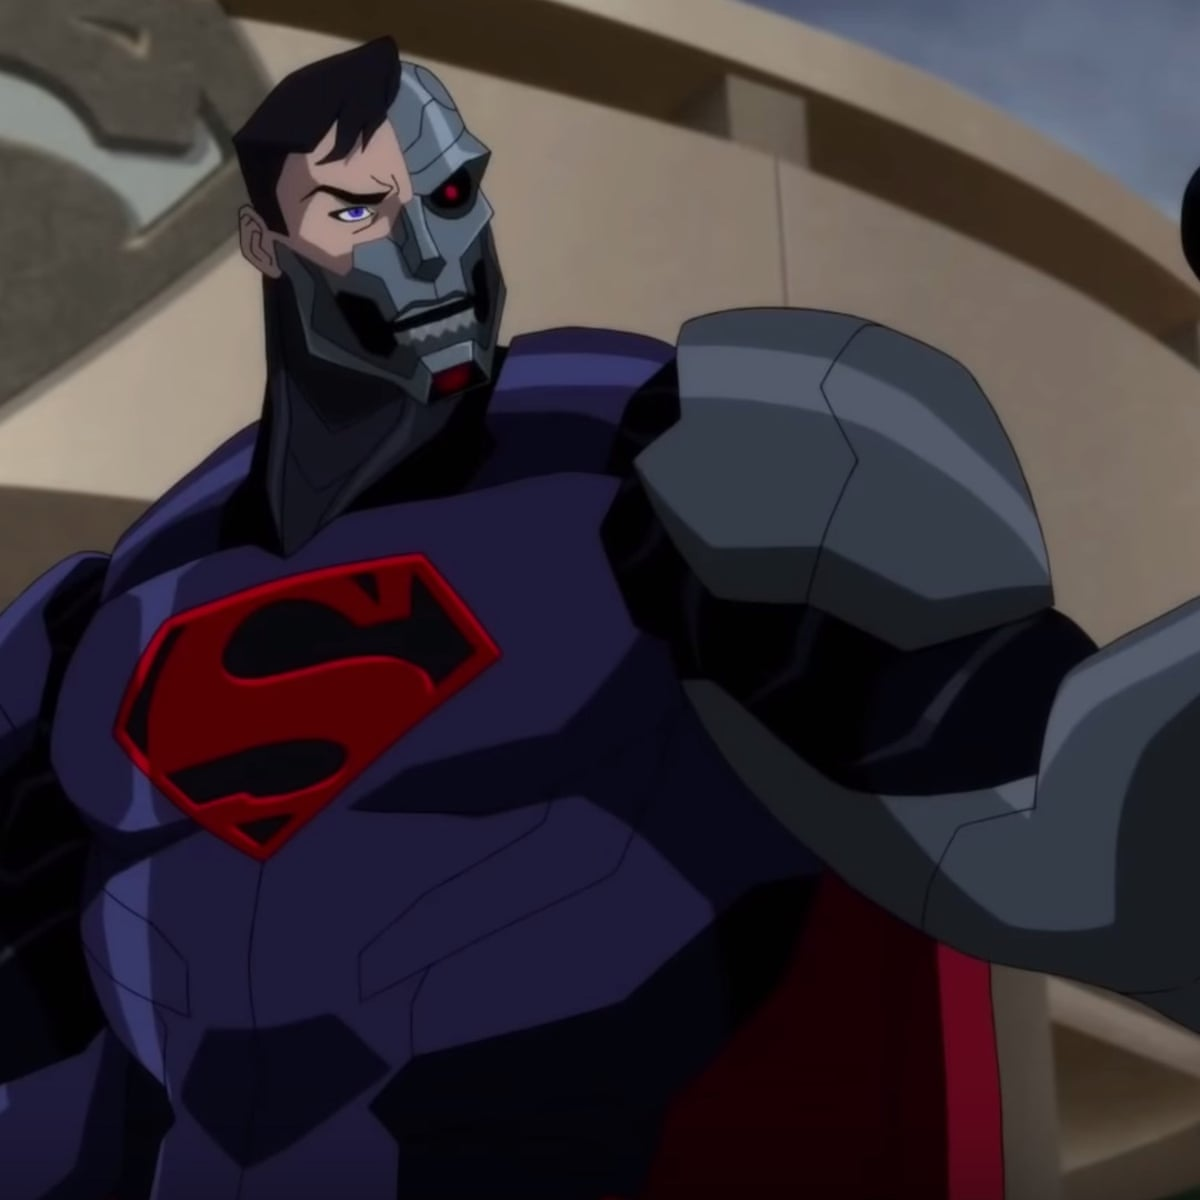 Reign Of The Supermen Review Copycat Superheroes Fight It Out Superhero Movies The Guardian